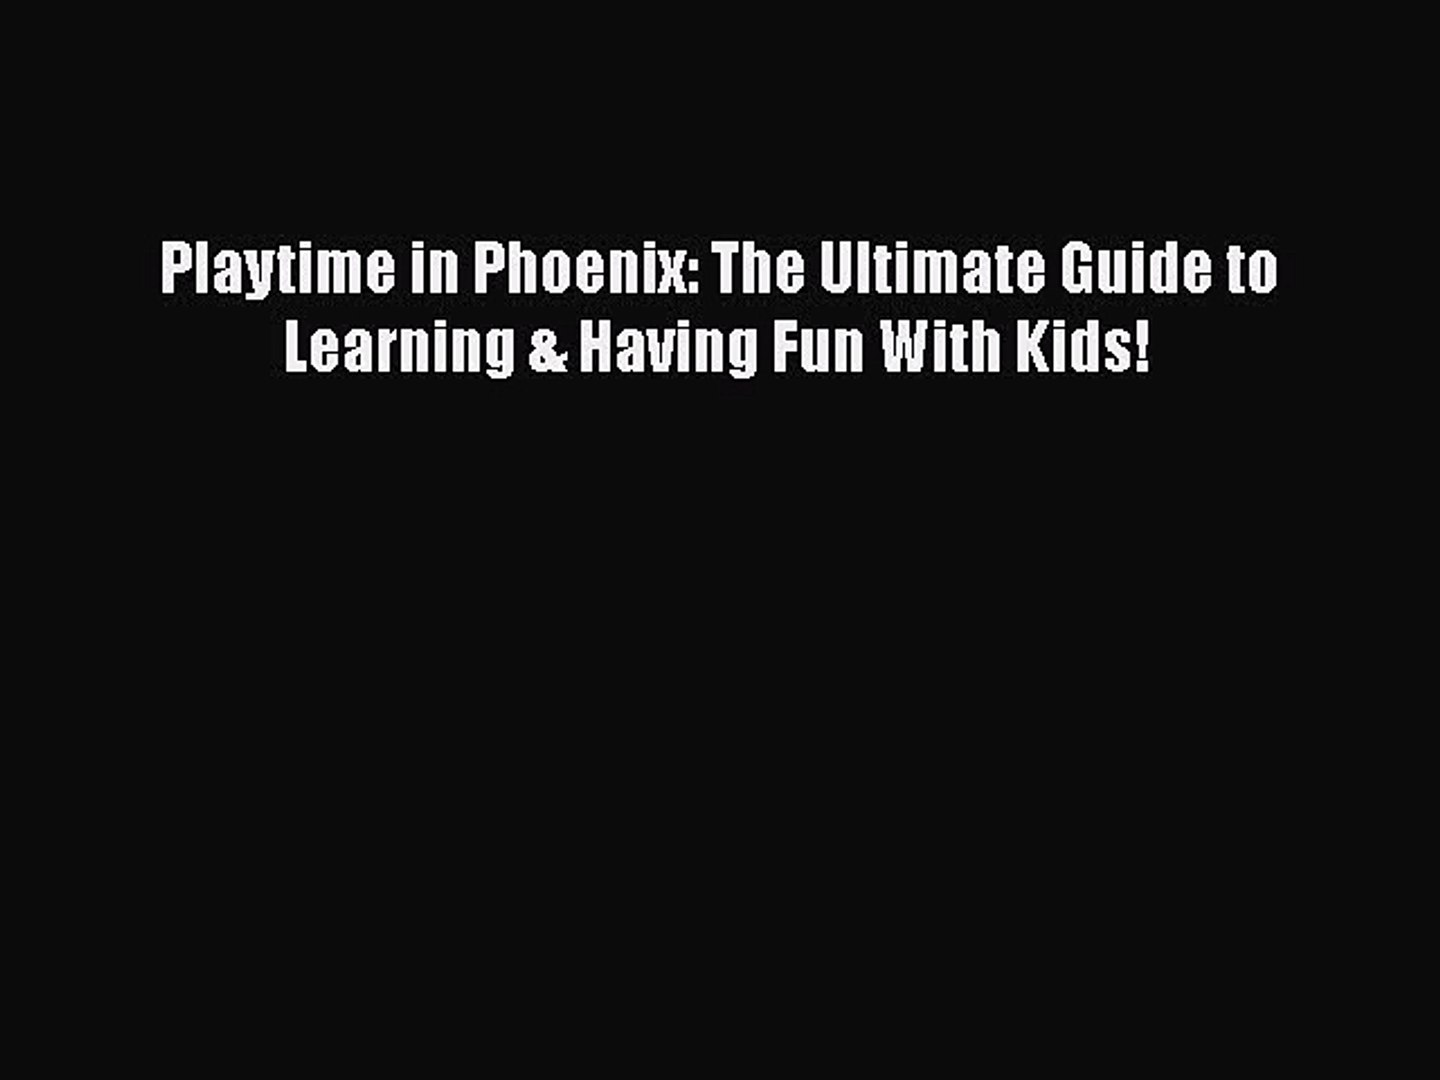 Download Book Playtime in Phoenix: The Ultimate Guide to Learning & Having Fun With Kids! E-Book